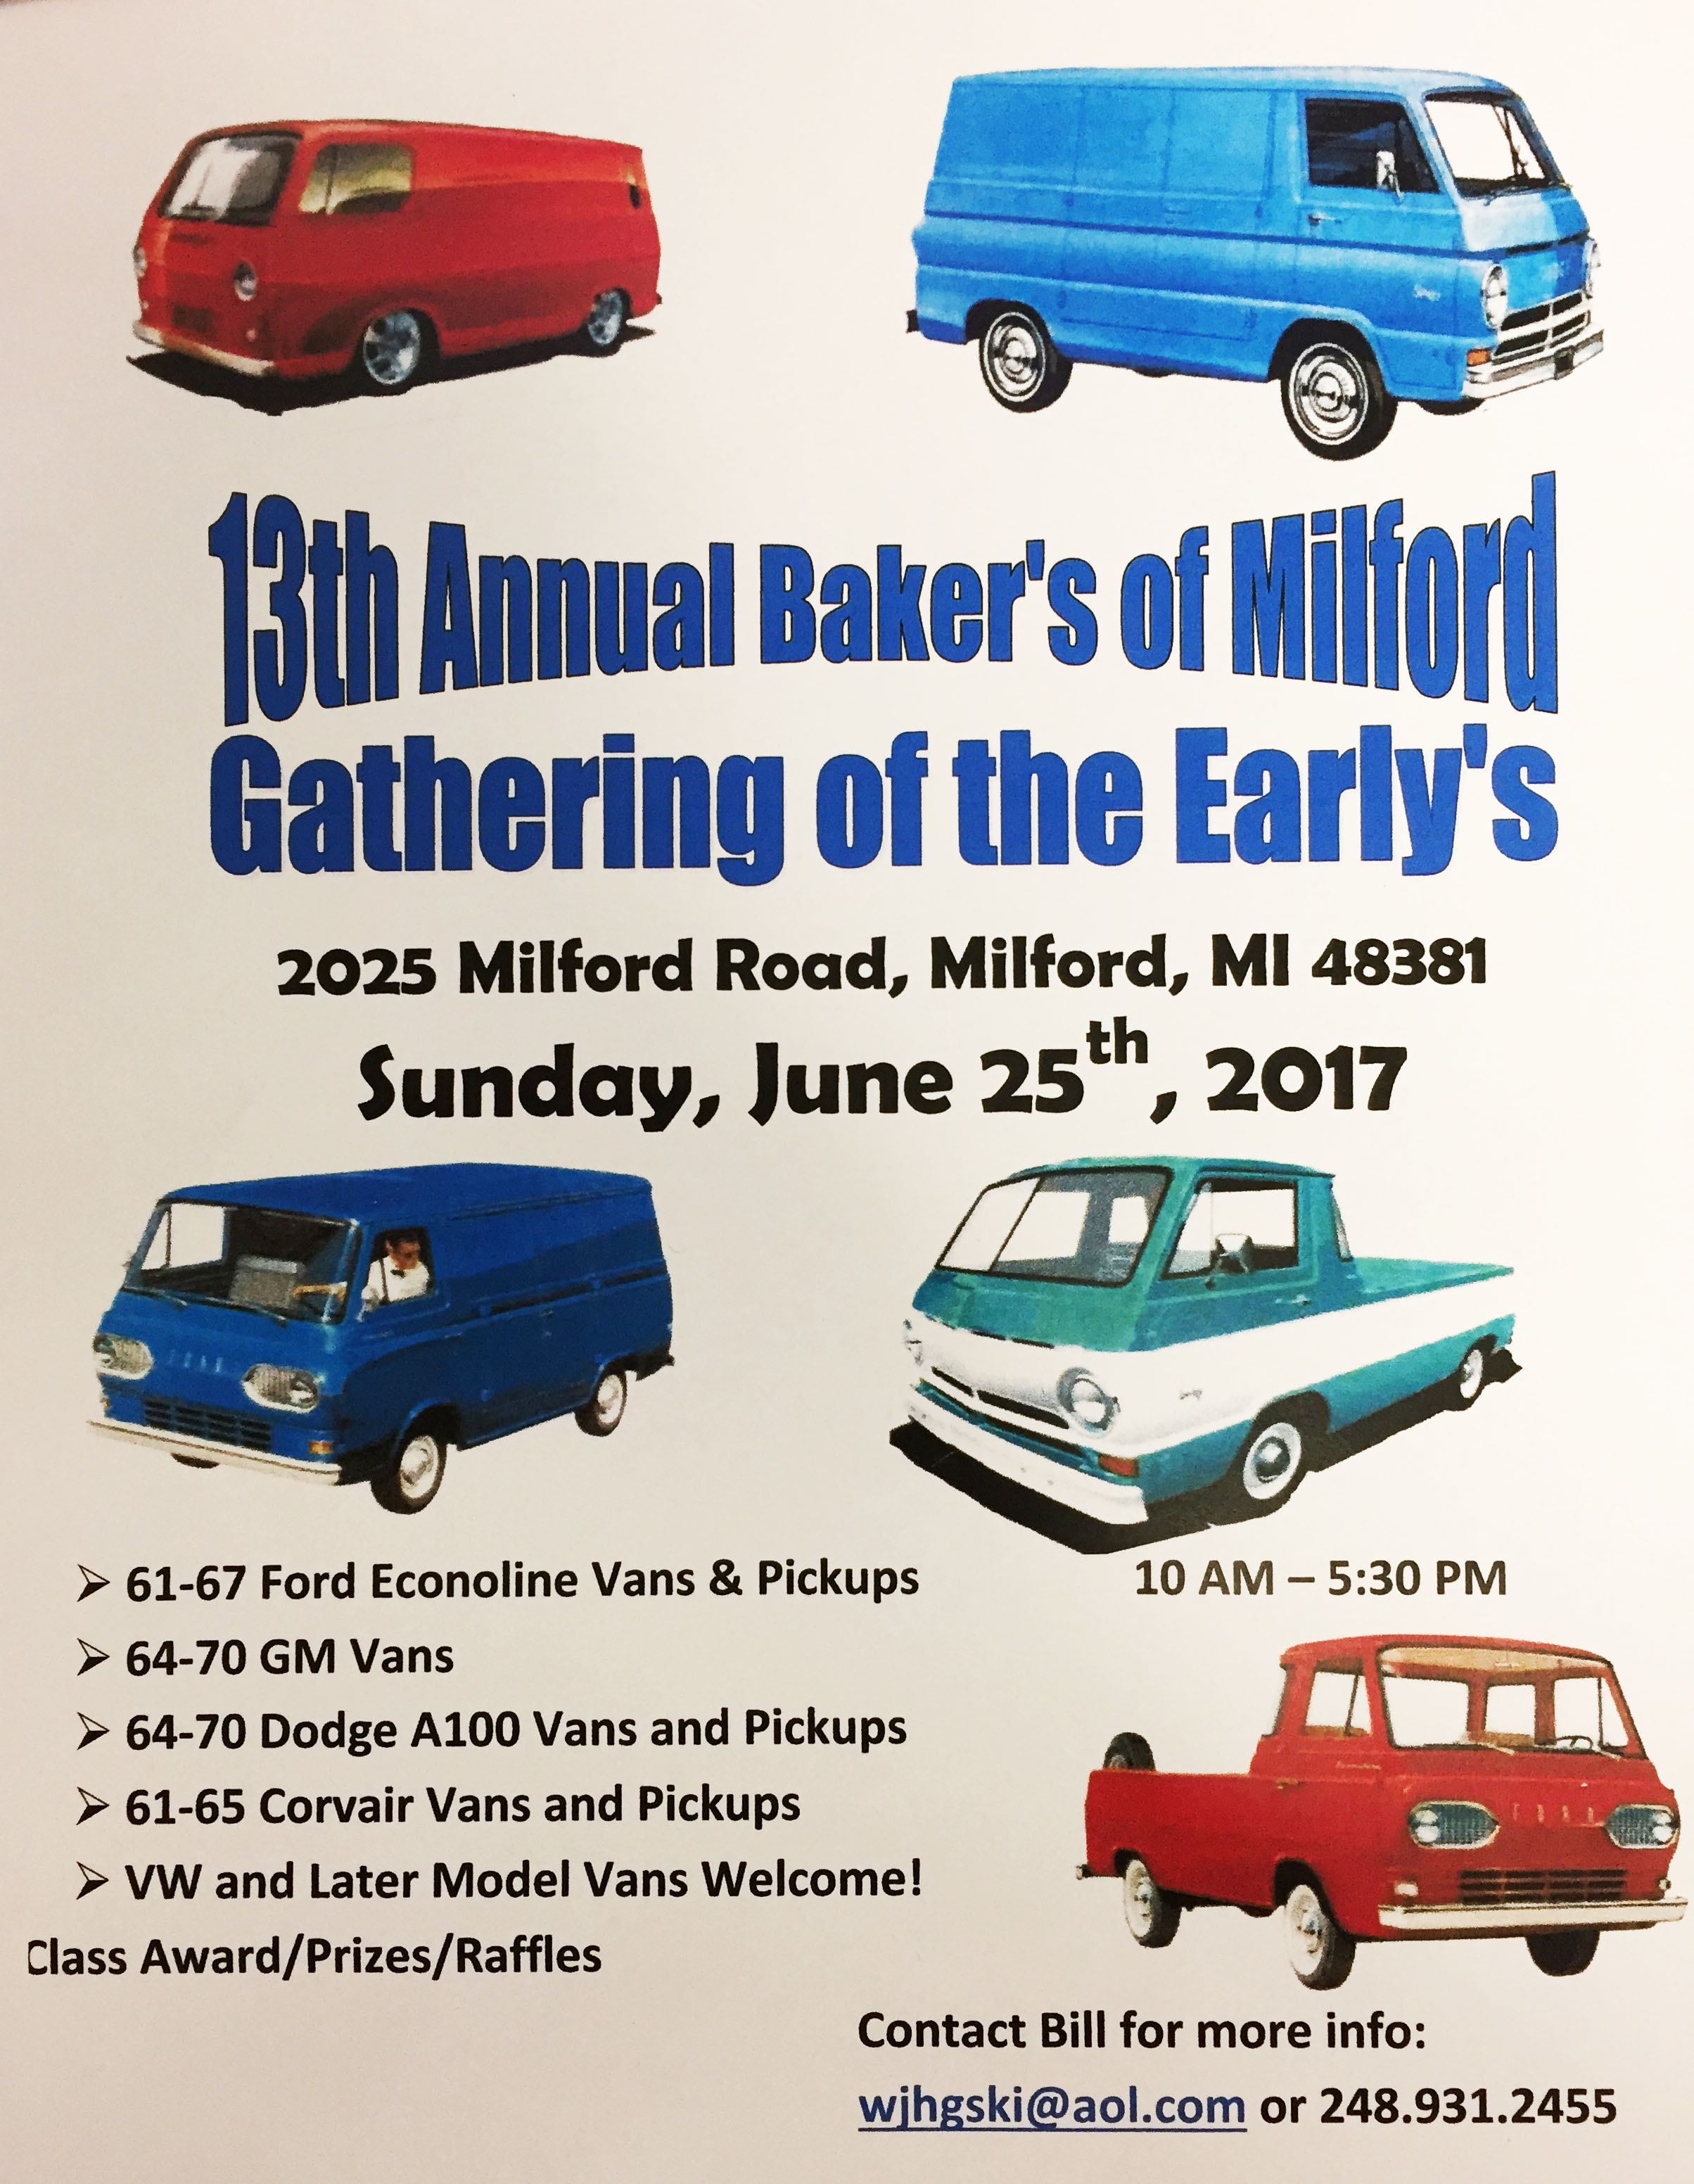 13th annual Baker's of Milford Gathering of the Early's